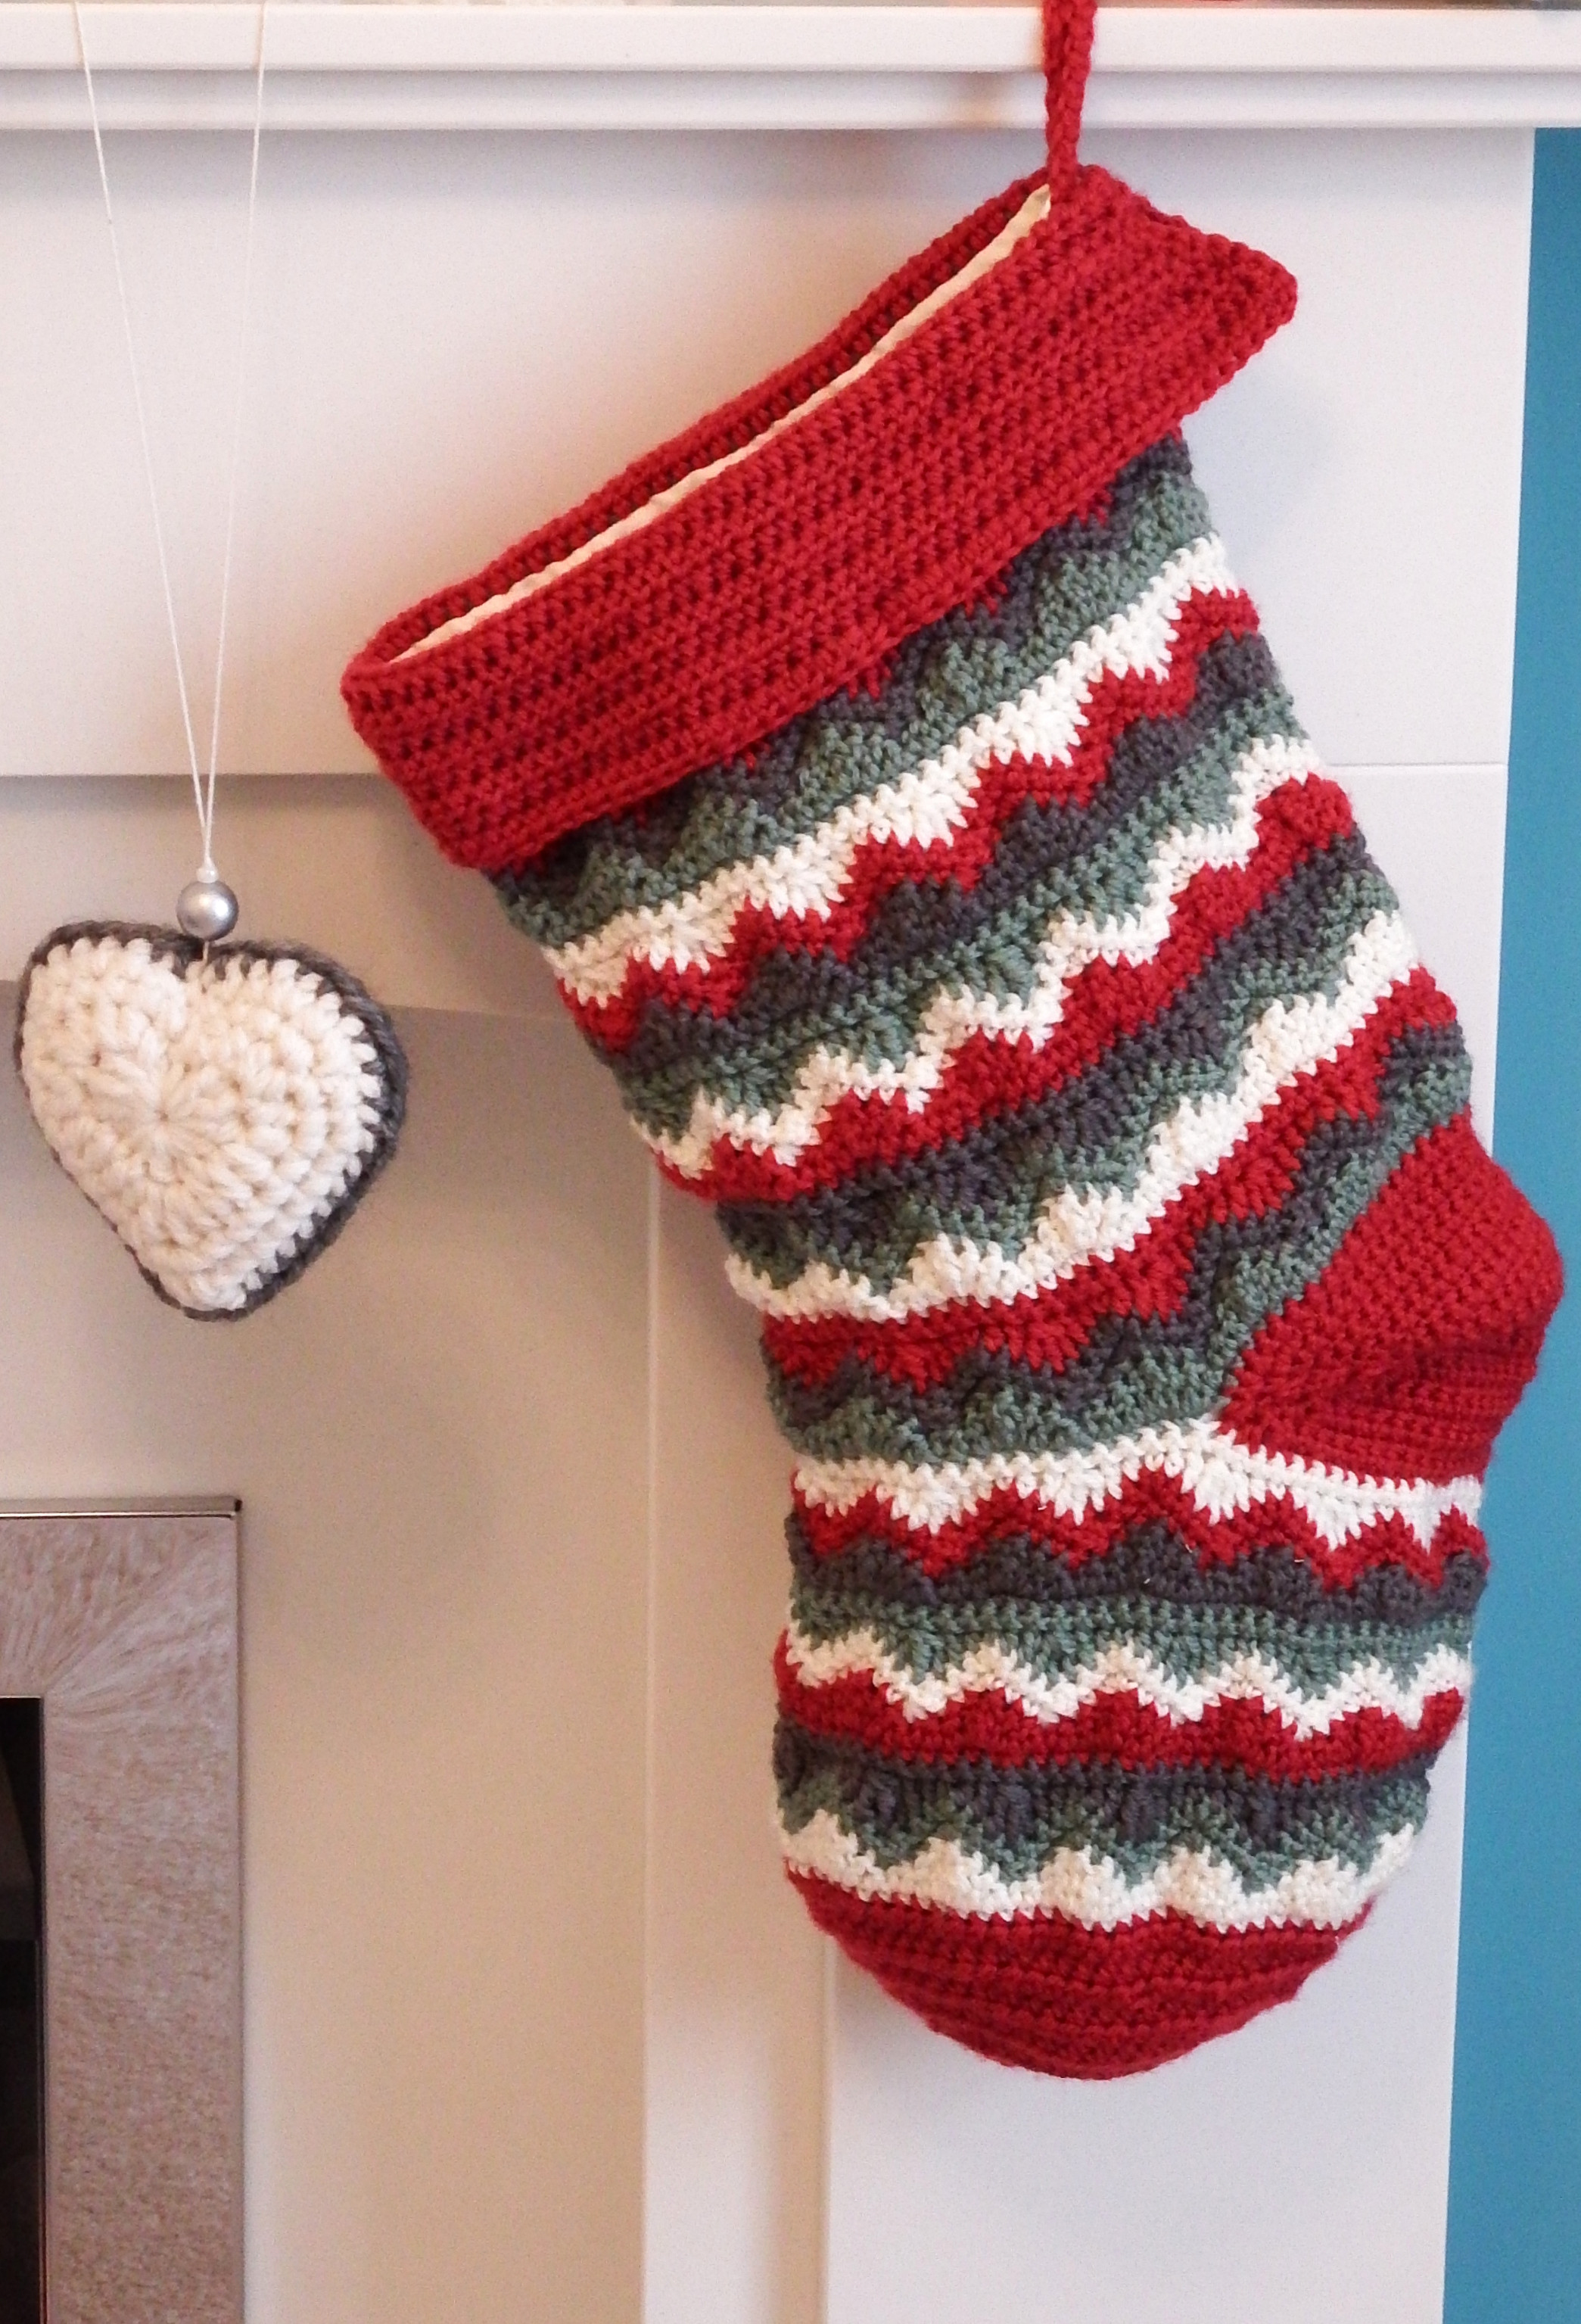 Lovely Christmas Stocking Crochet Pattern for Christmas Stocking Of Best Of Crochet Christmas Stockings B Hooked Crochet Crochet Pattern for Christmas Stocking